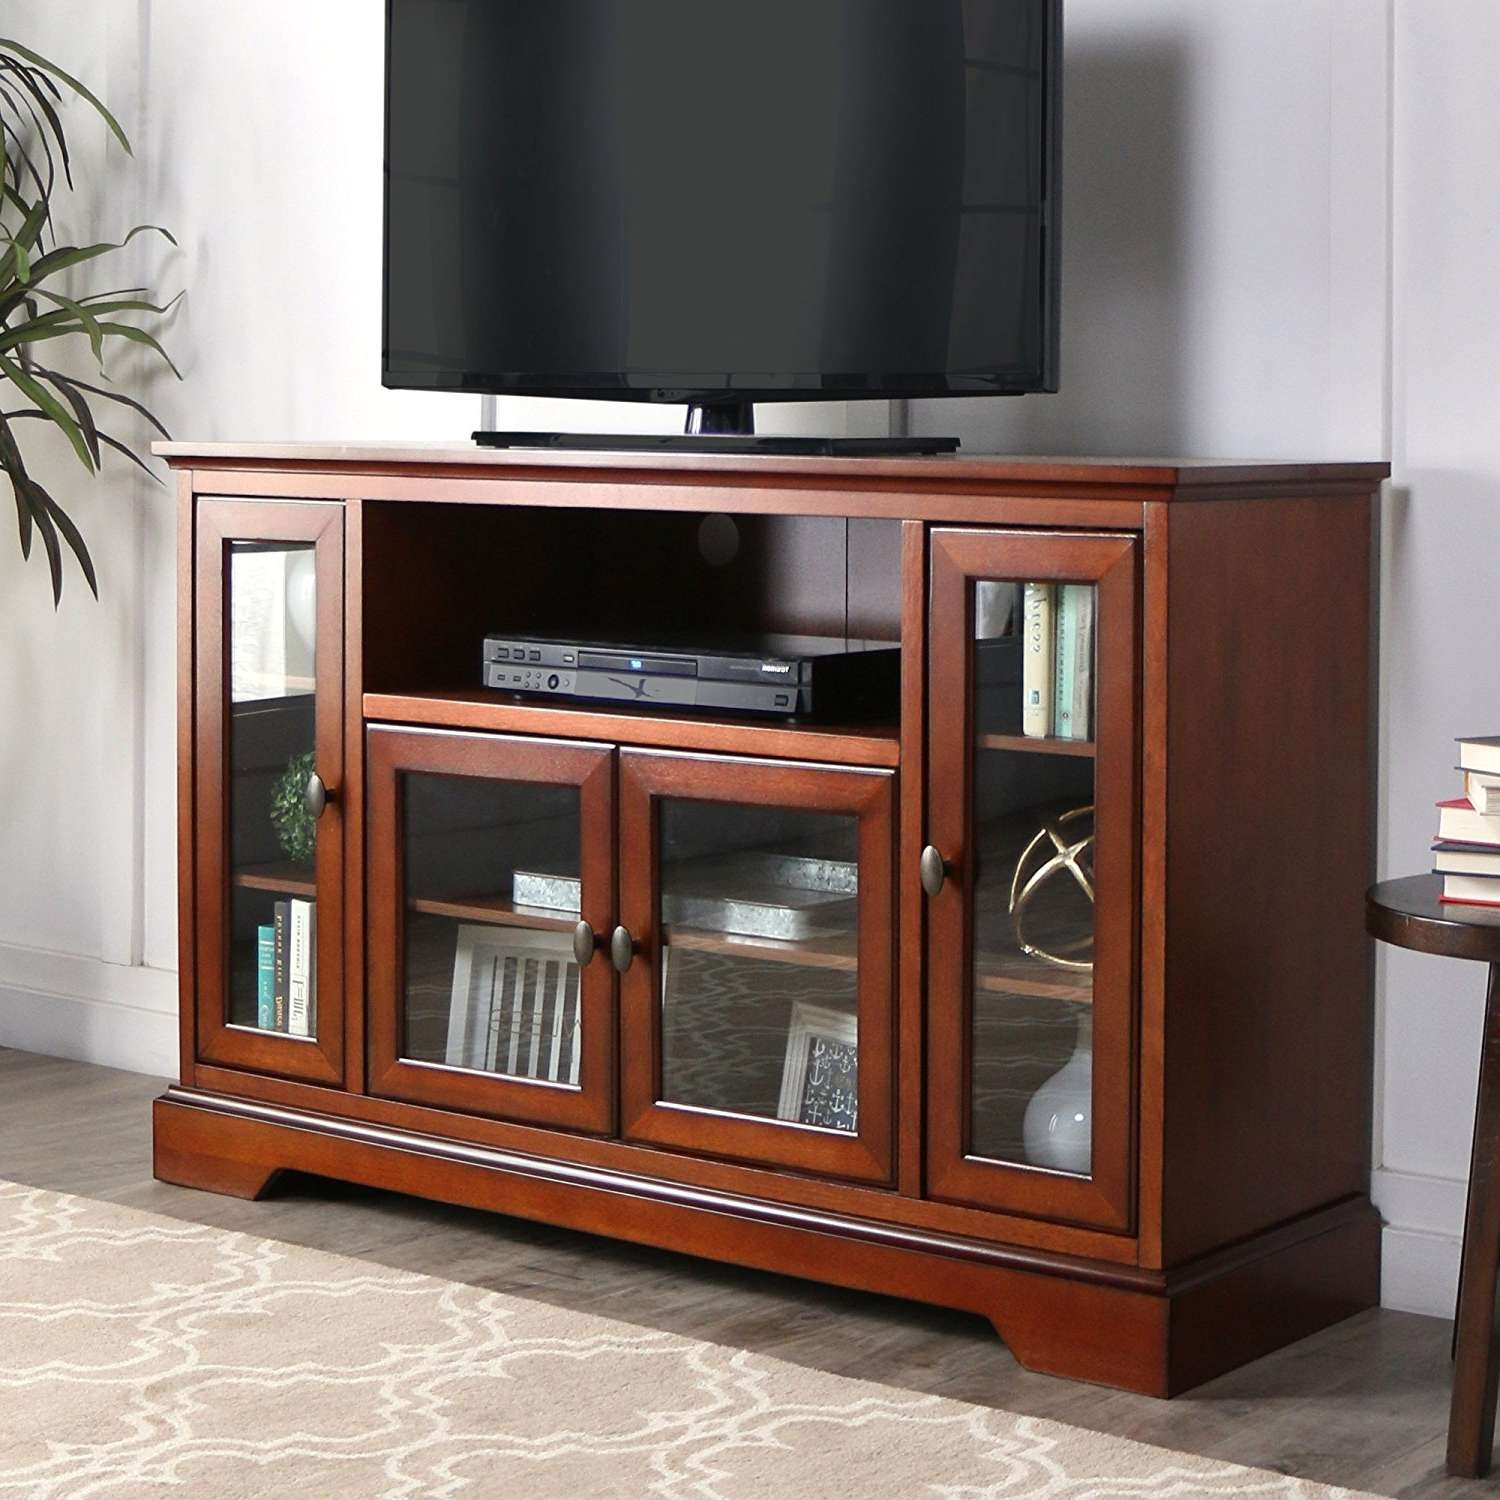 Rustic Tv Stand With Barn Doors : Ideal Rustic Furniture Tv Stand Inside Wooden Tv Stands With Doors (View 9 of 15)